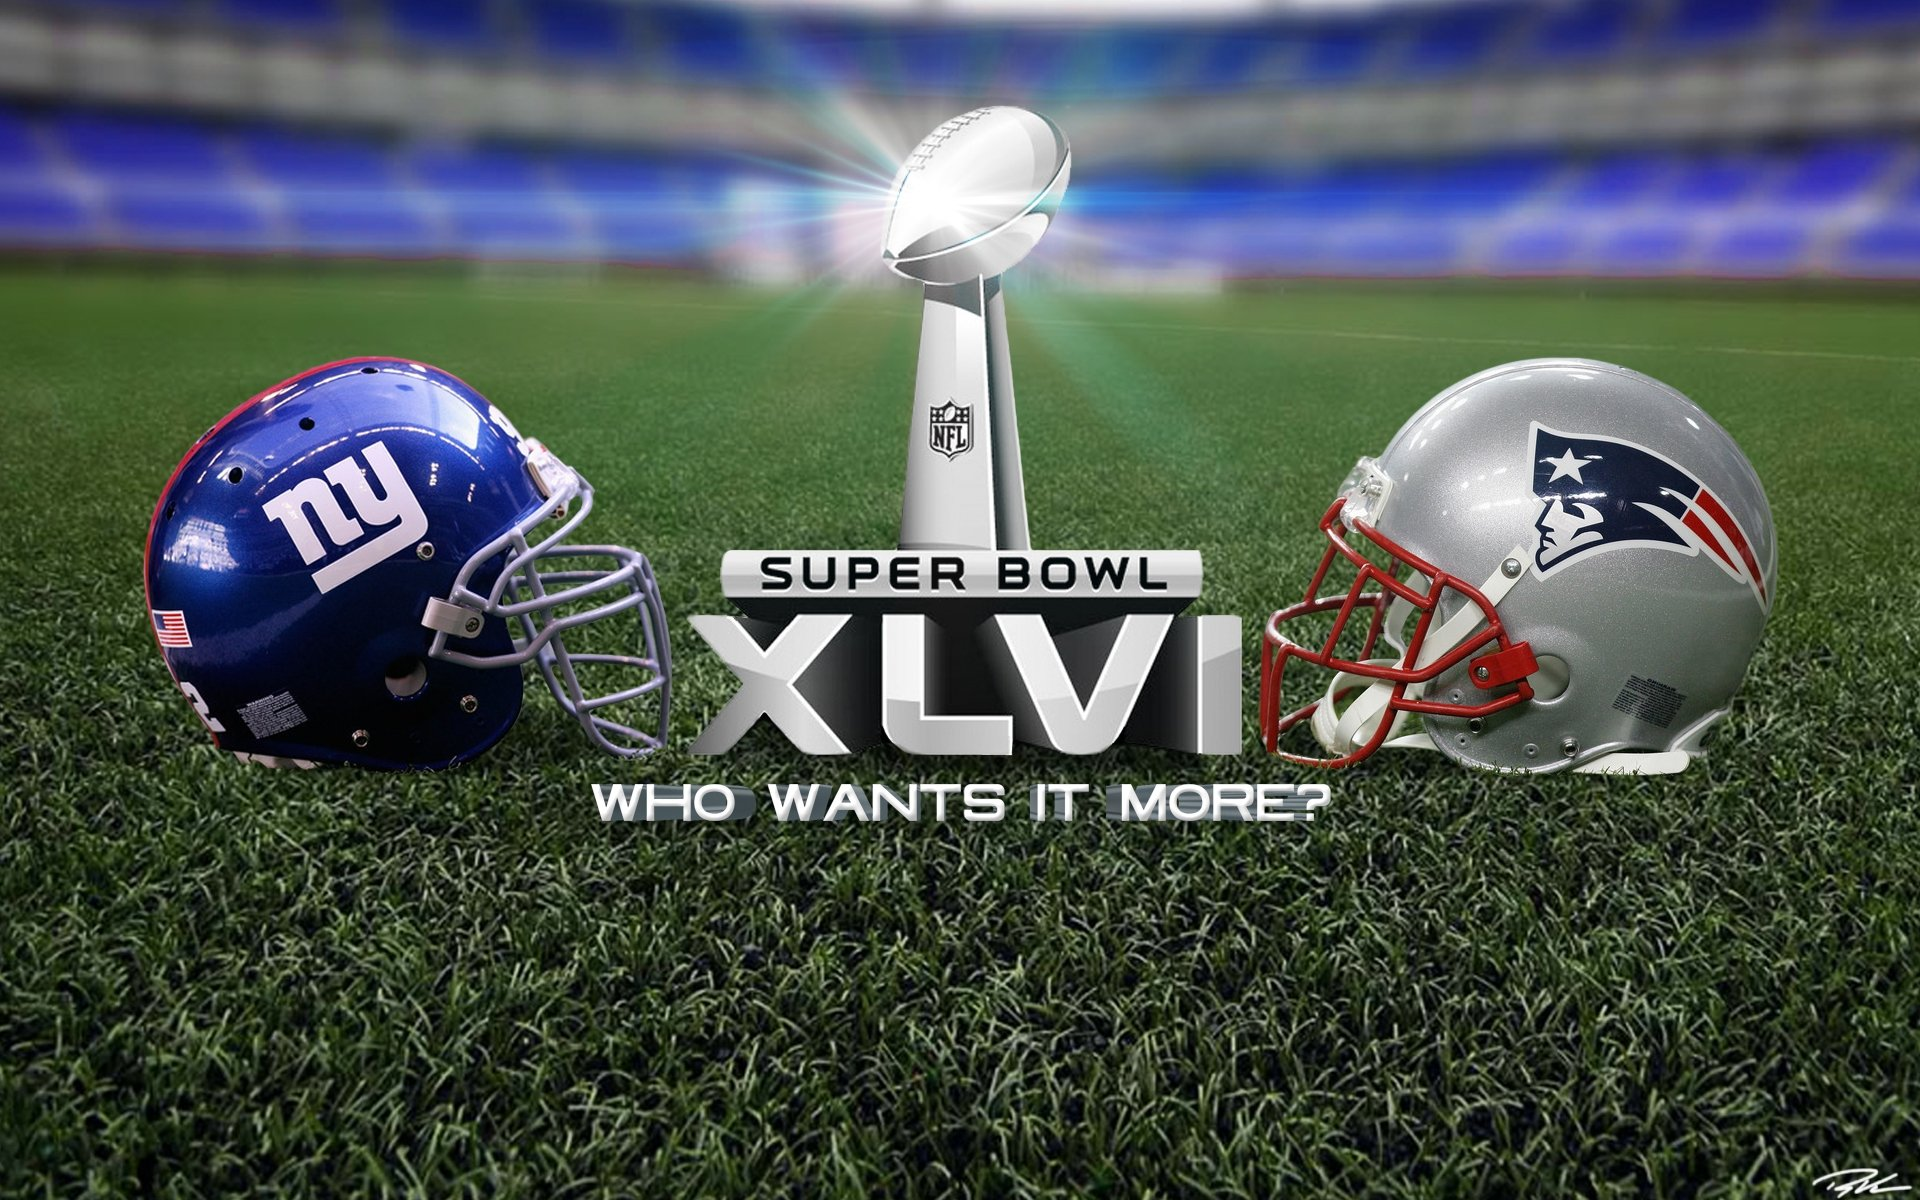 39+] Super Bowl Wallpapers 1920x1080 on